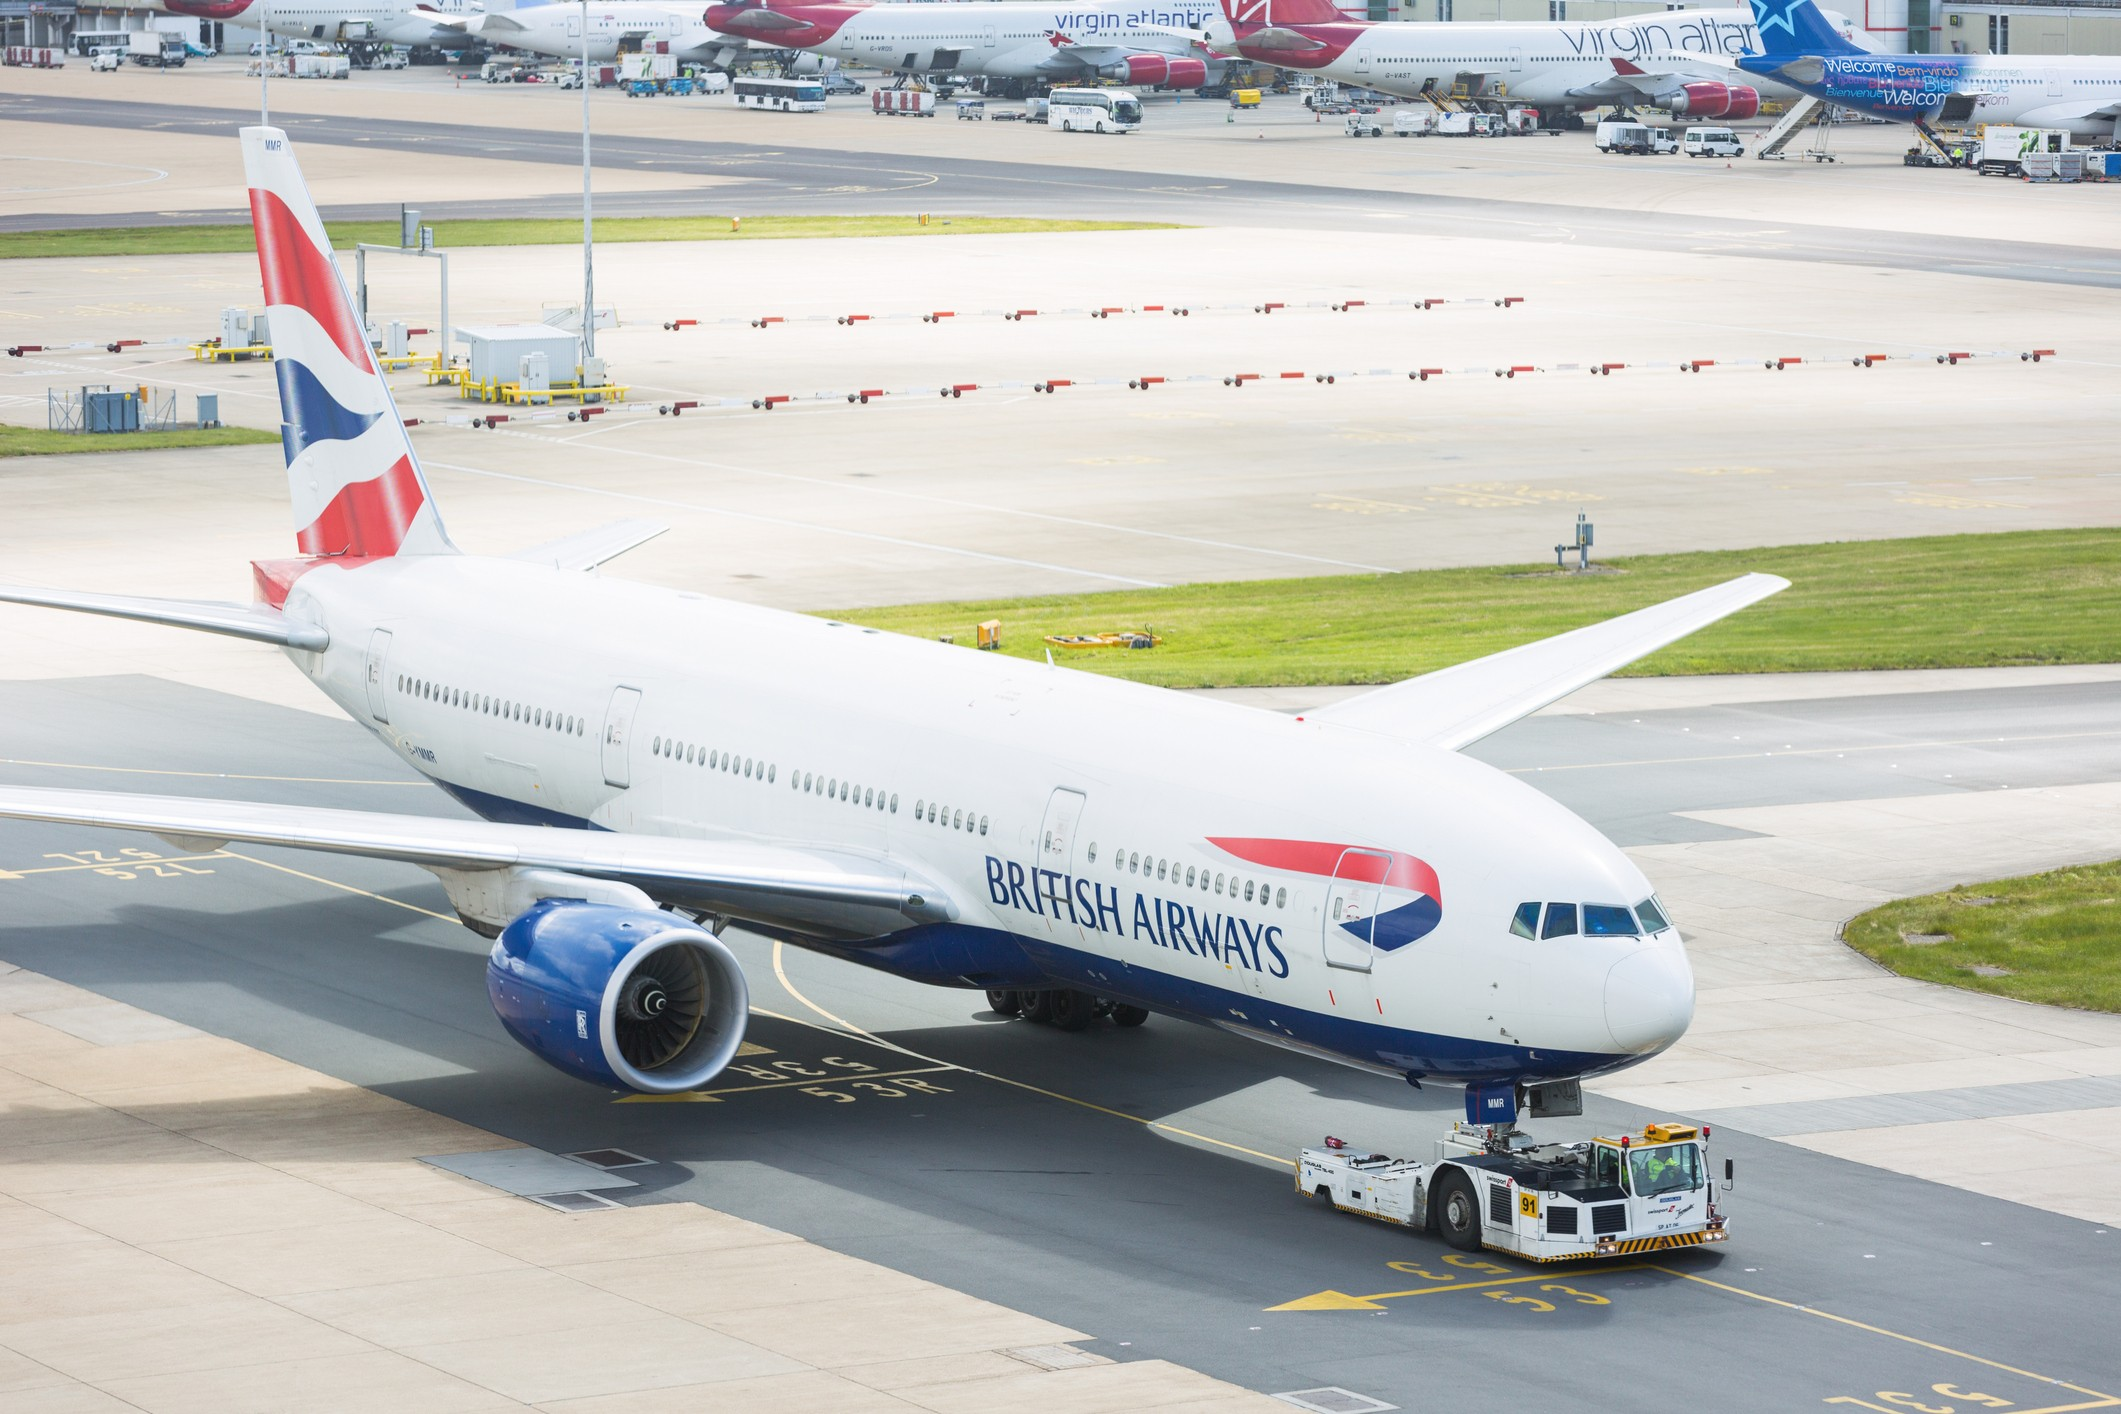 British Airways Boeing 777 at London Gatwick airport